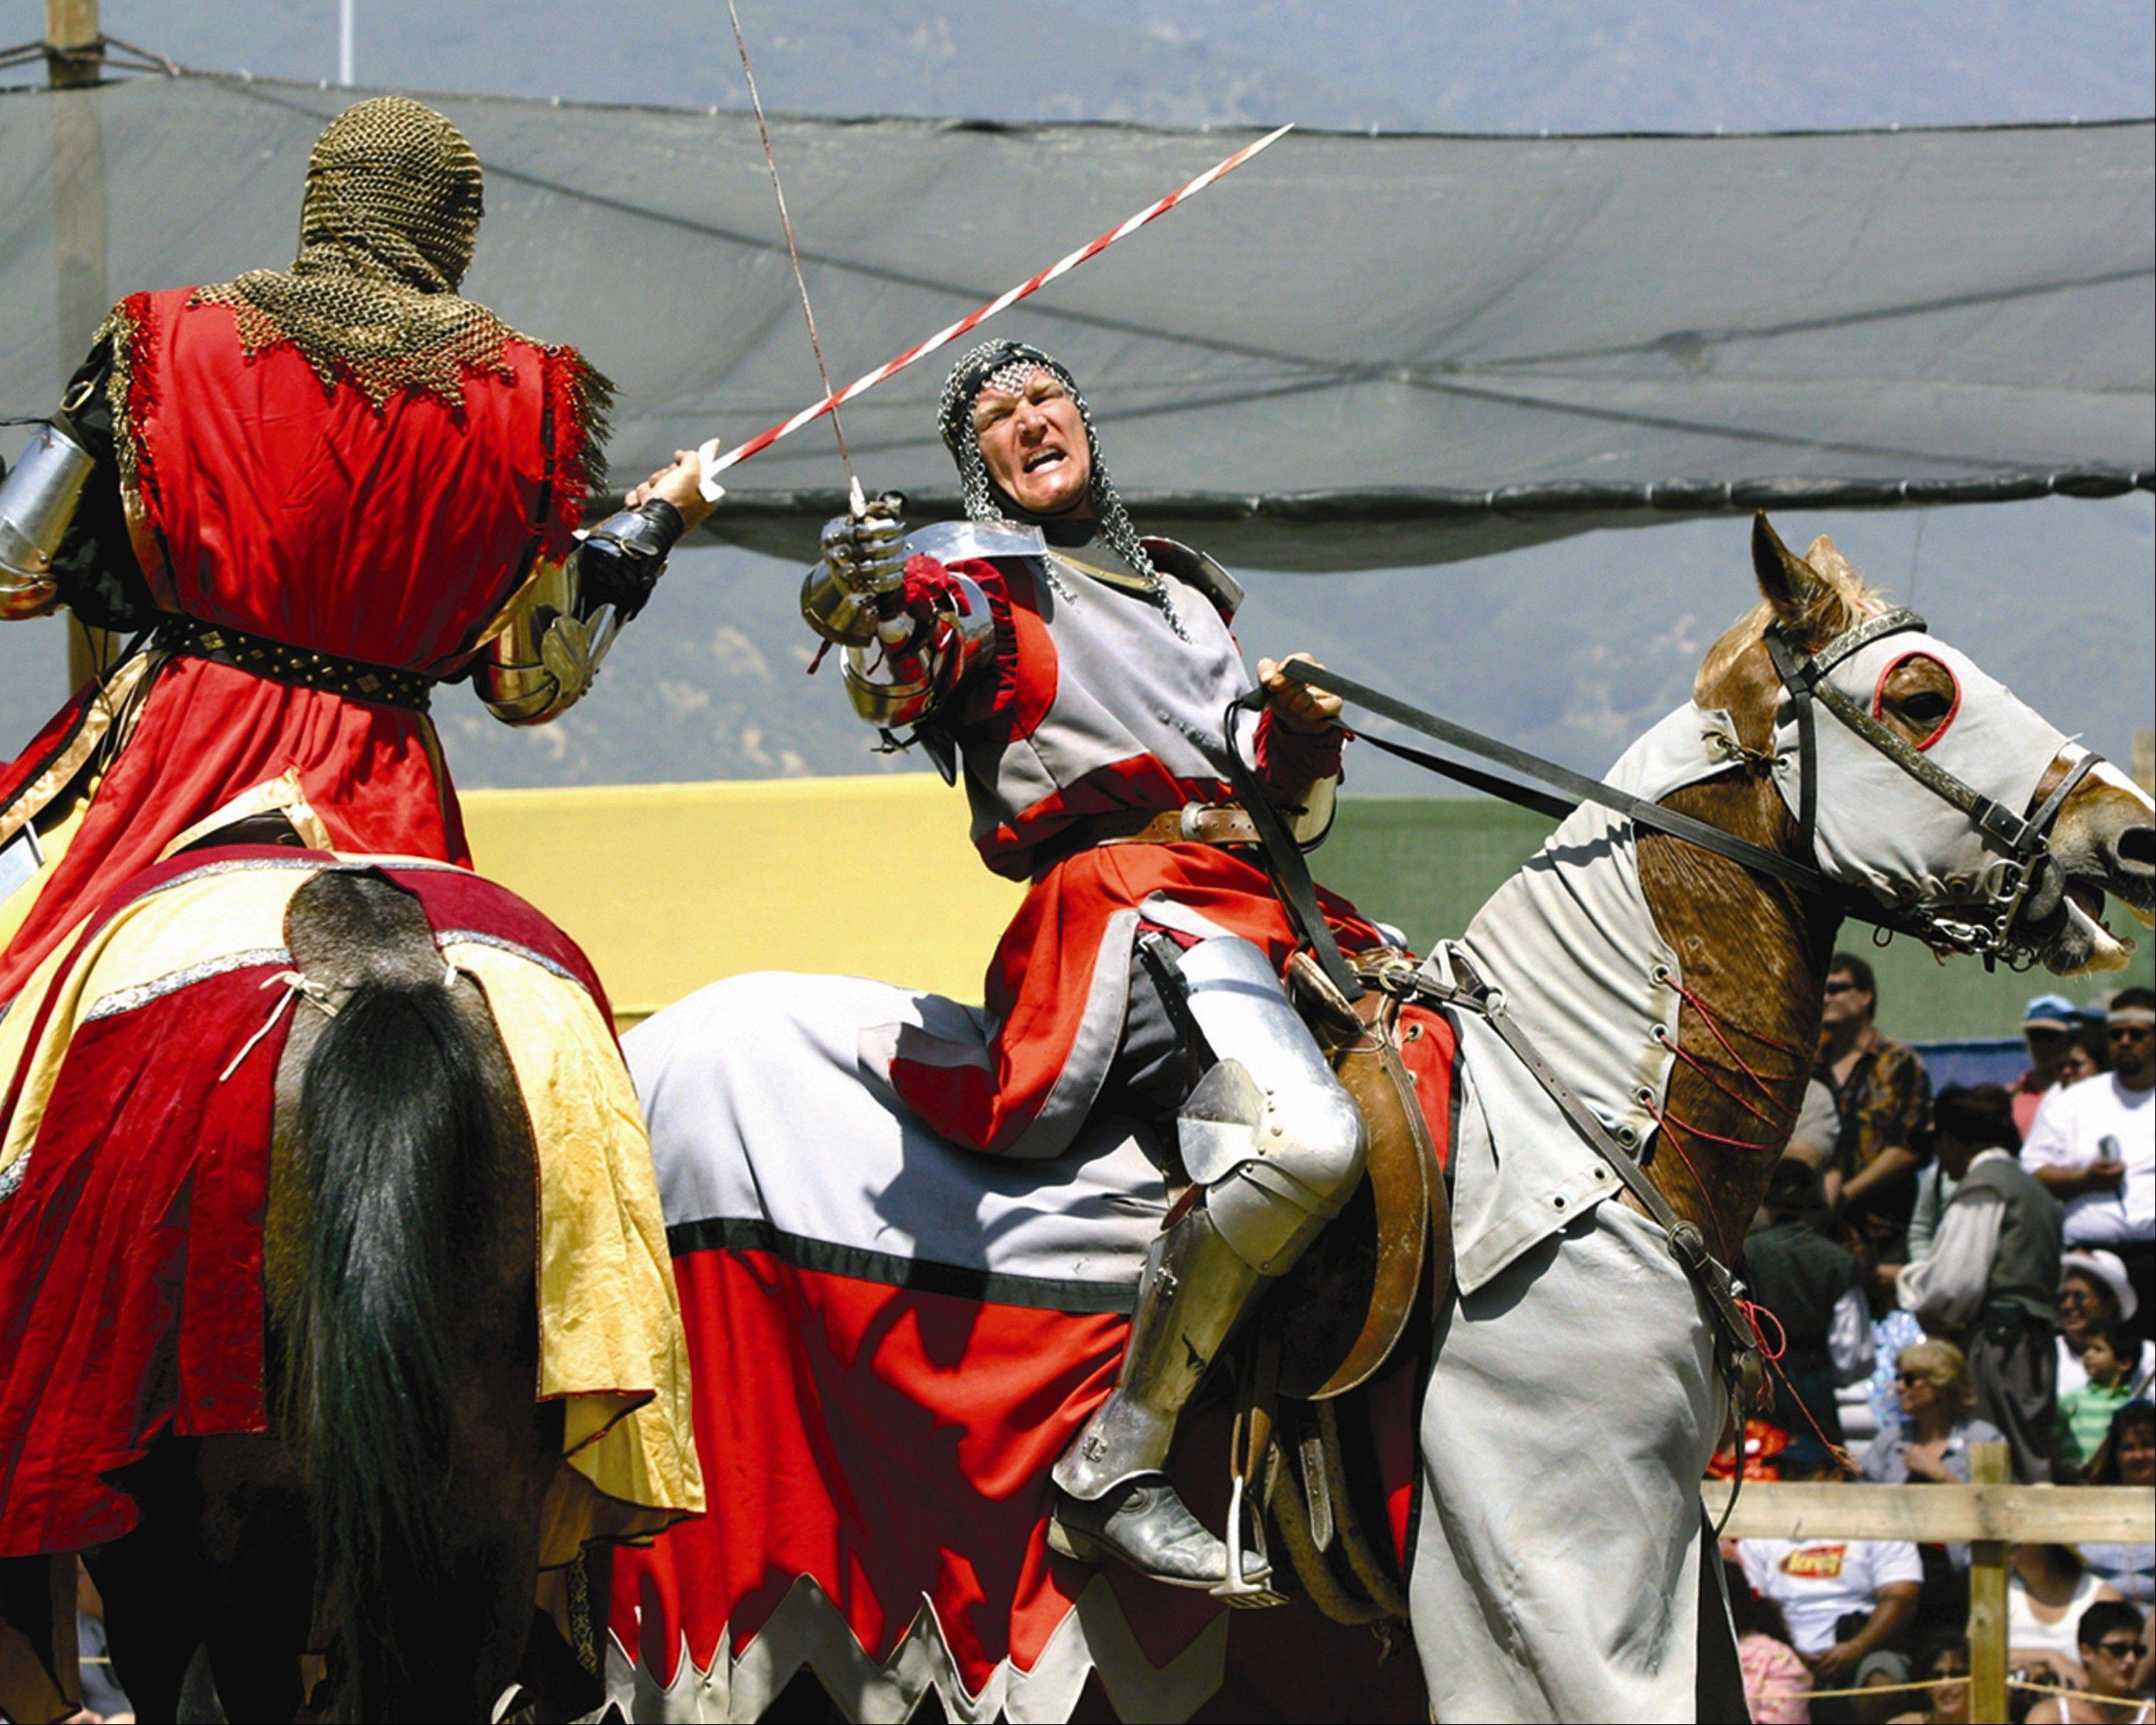 The Bristol Renaissance Faire returns for a summer full of jousting and other Elizabethan fun.